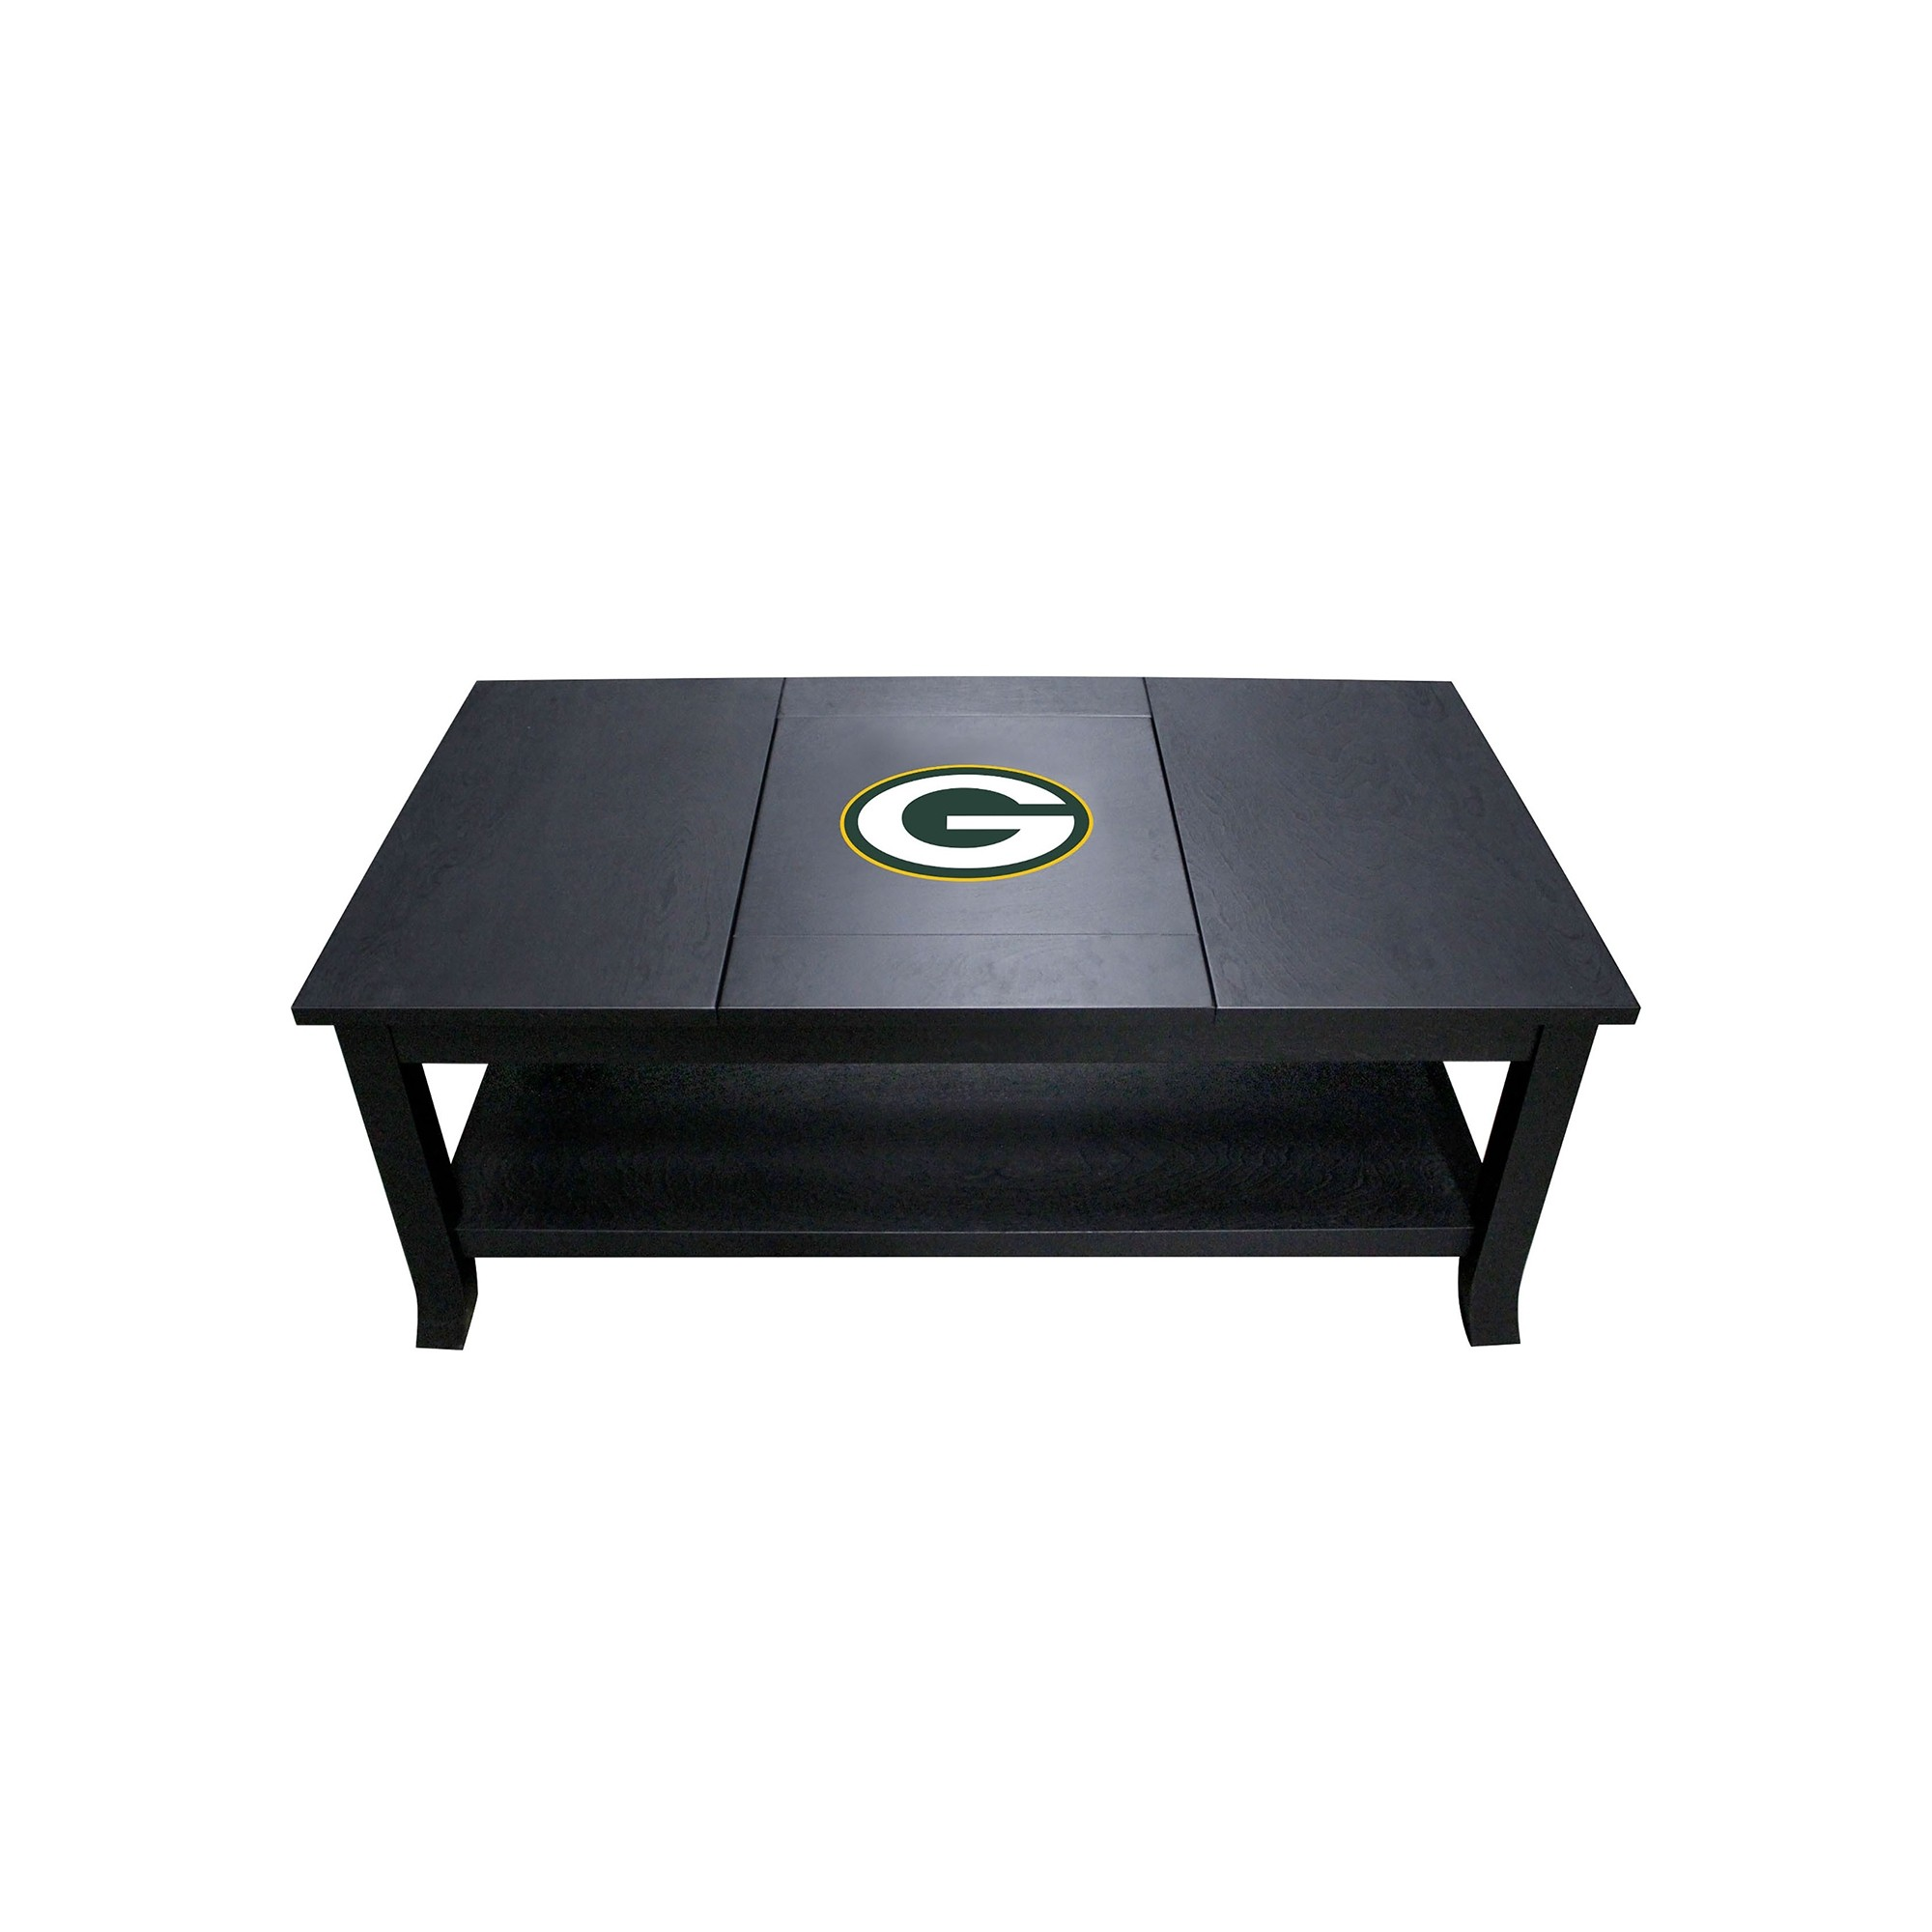 Green Bay Packers Coffee Table - 85-1001 - Nfl Football Green Bay Packers Coffee Mugs 85-1001